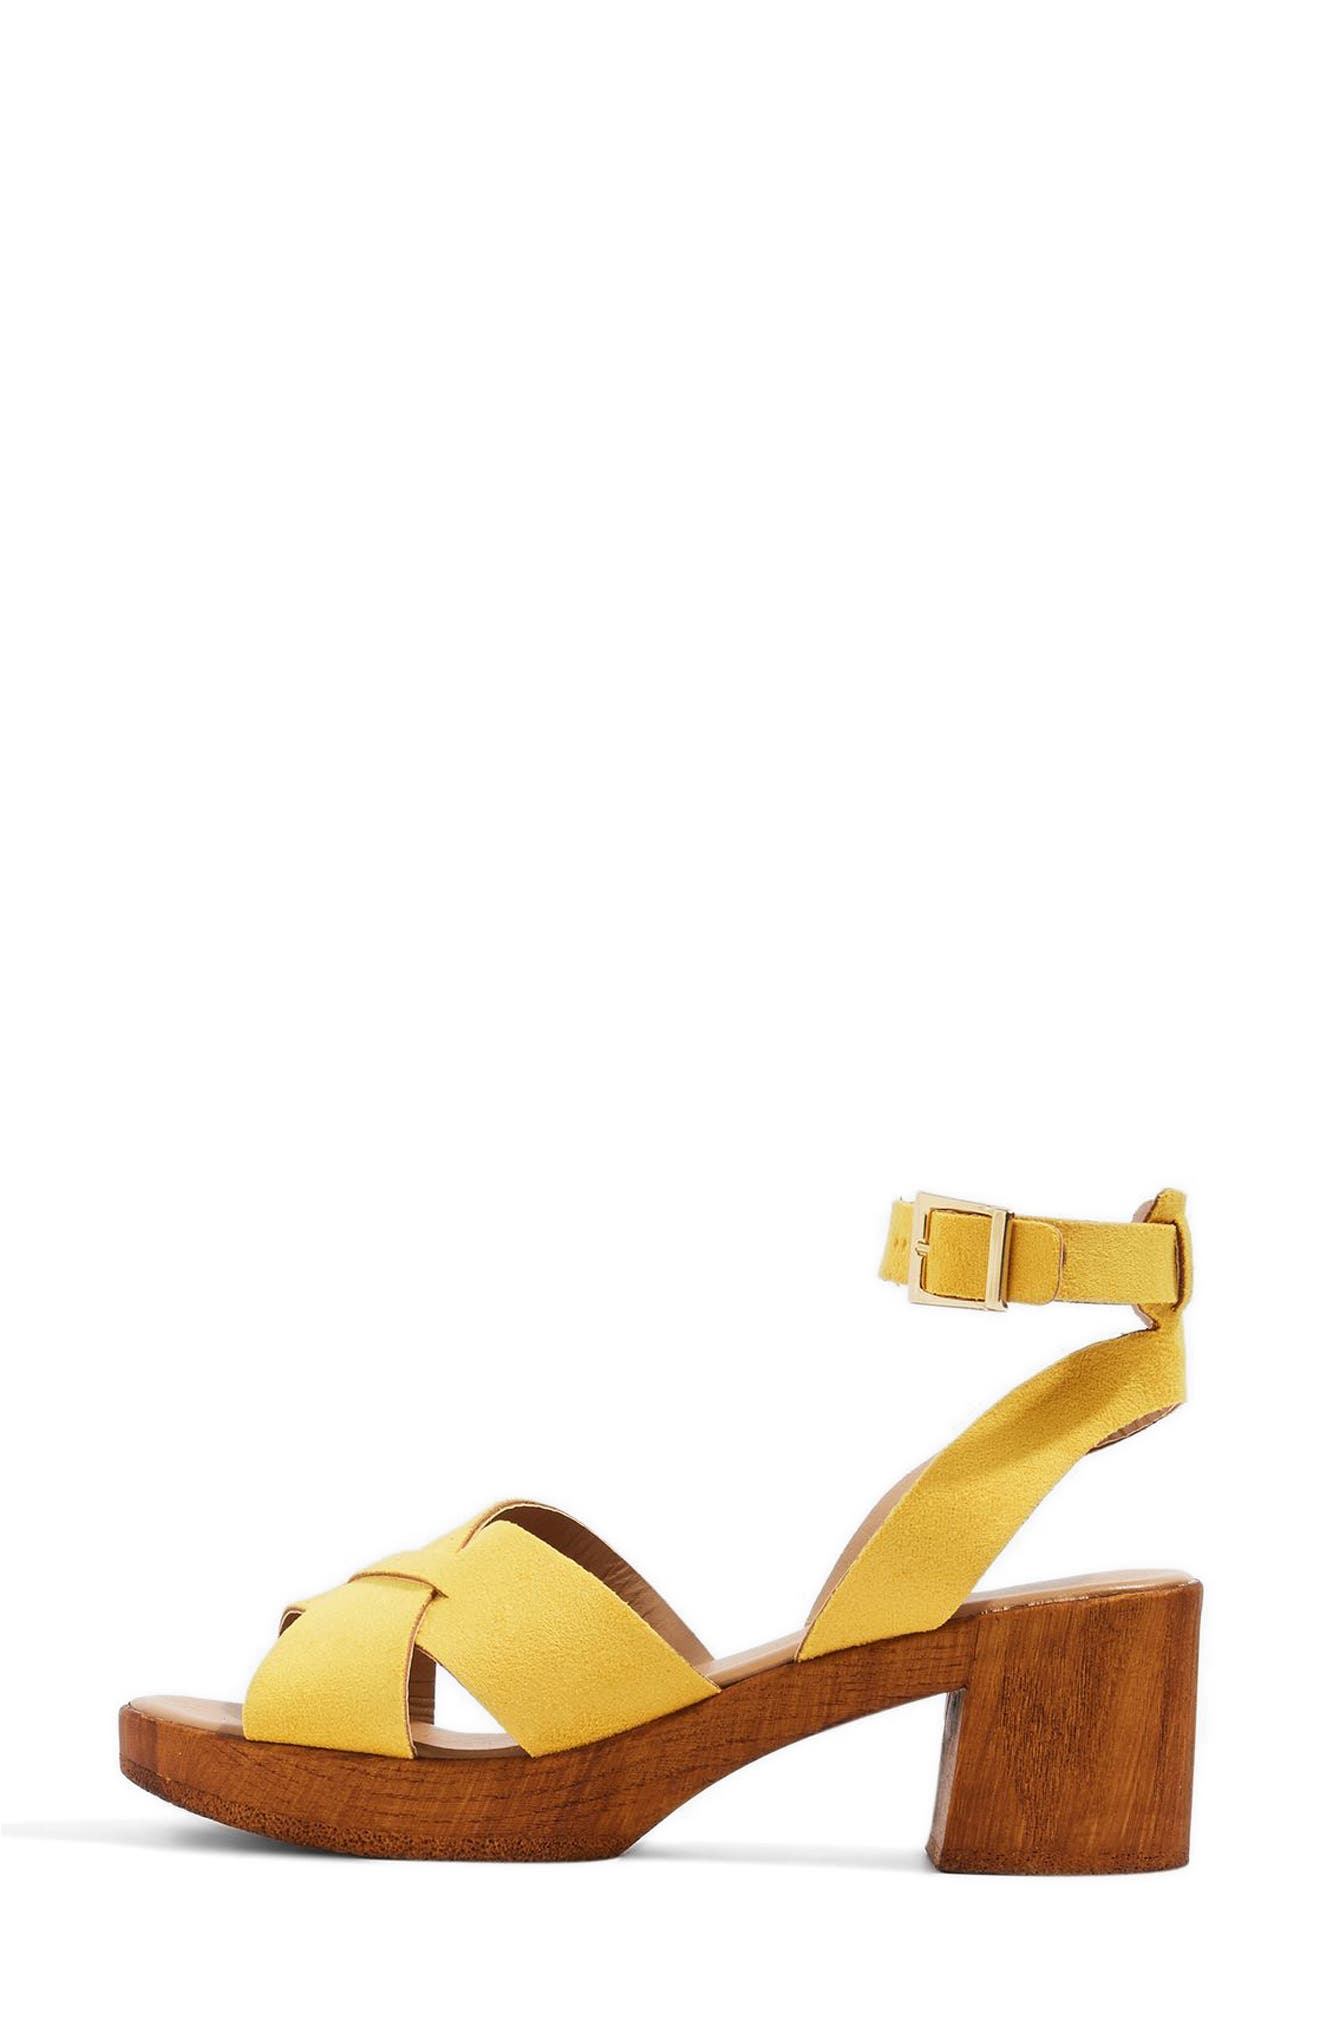 Dolly Block Heel Sandal,                             Alternate thumbnail 3, color,                             Yellow